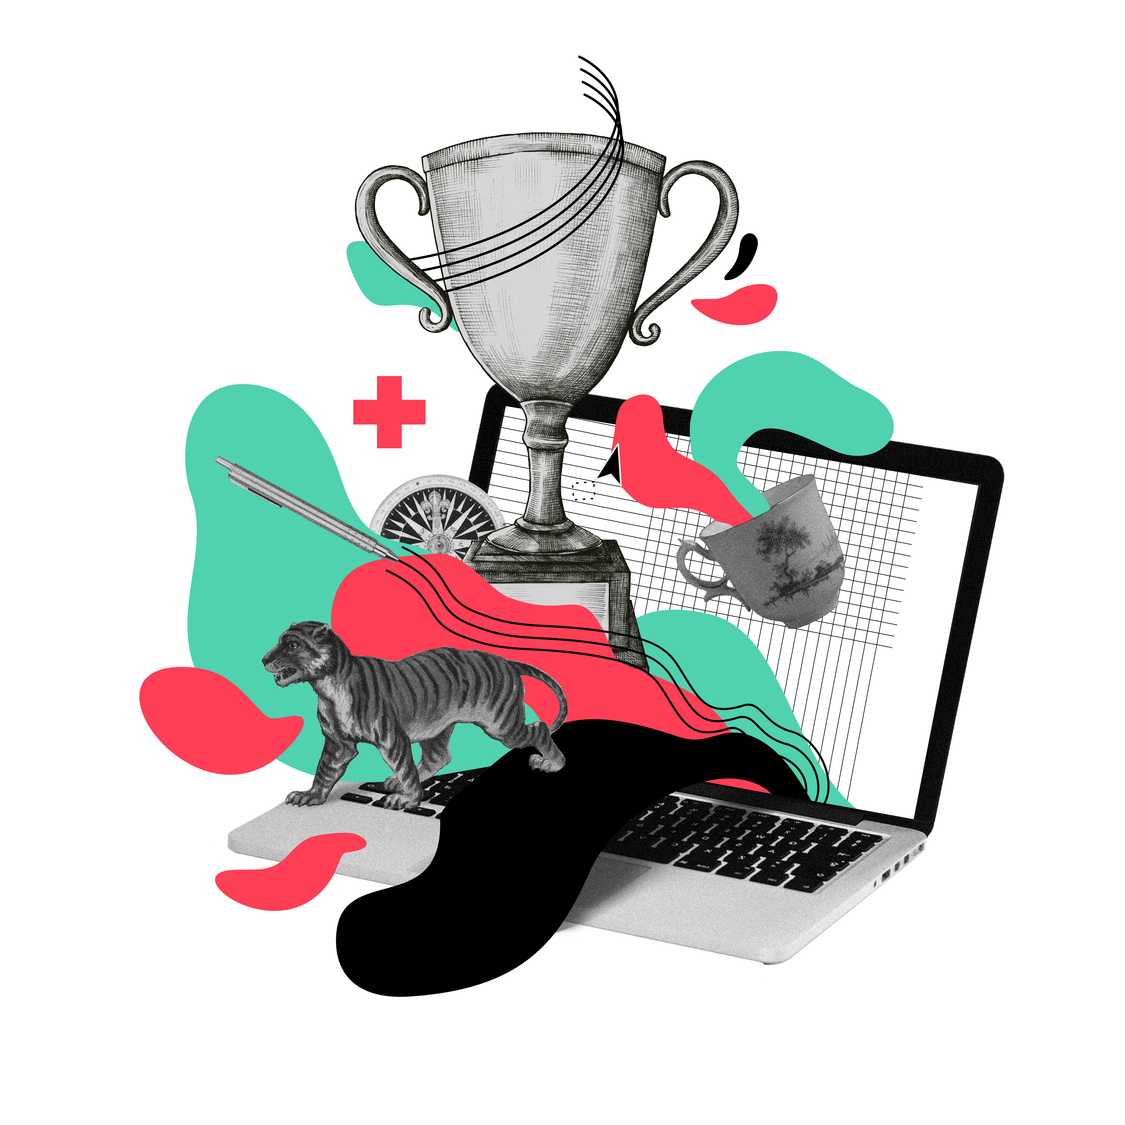 startup_award_illustration